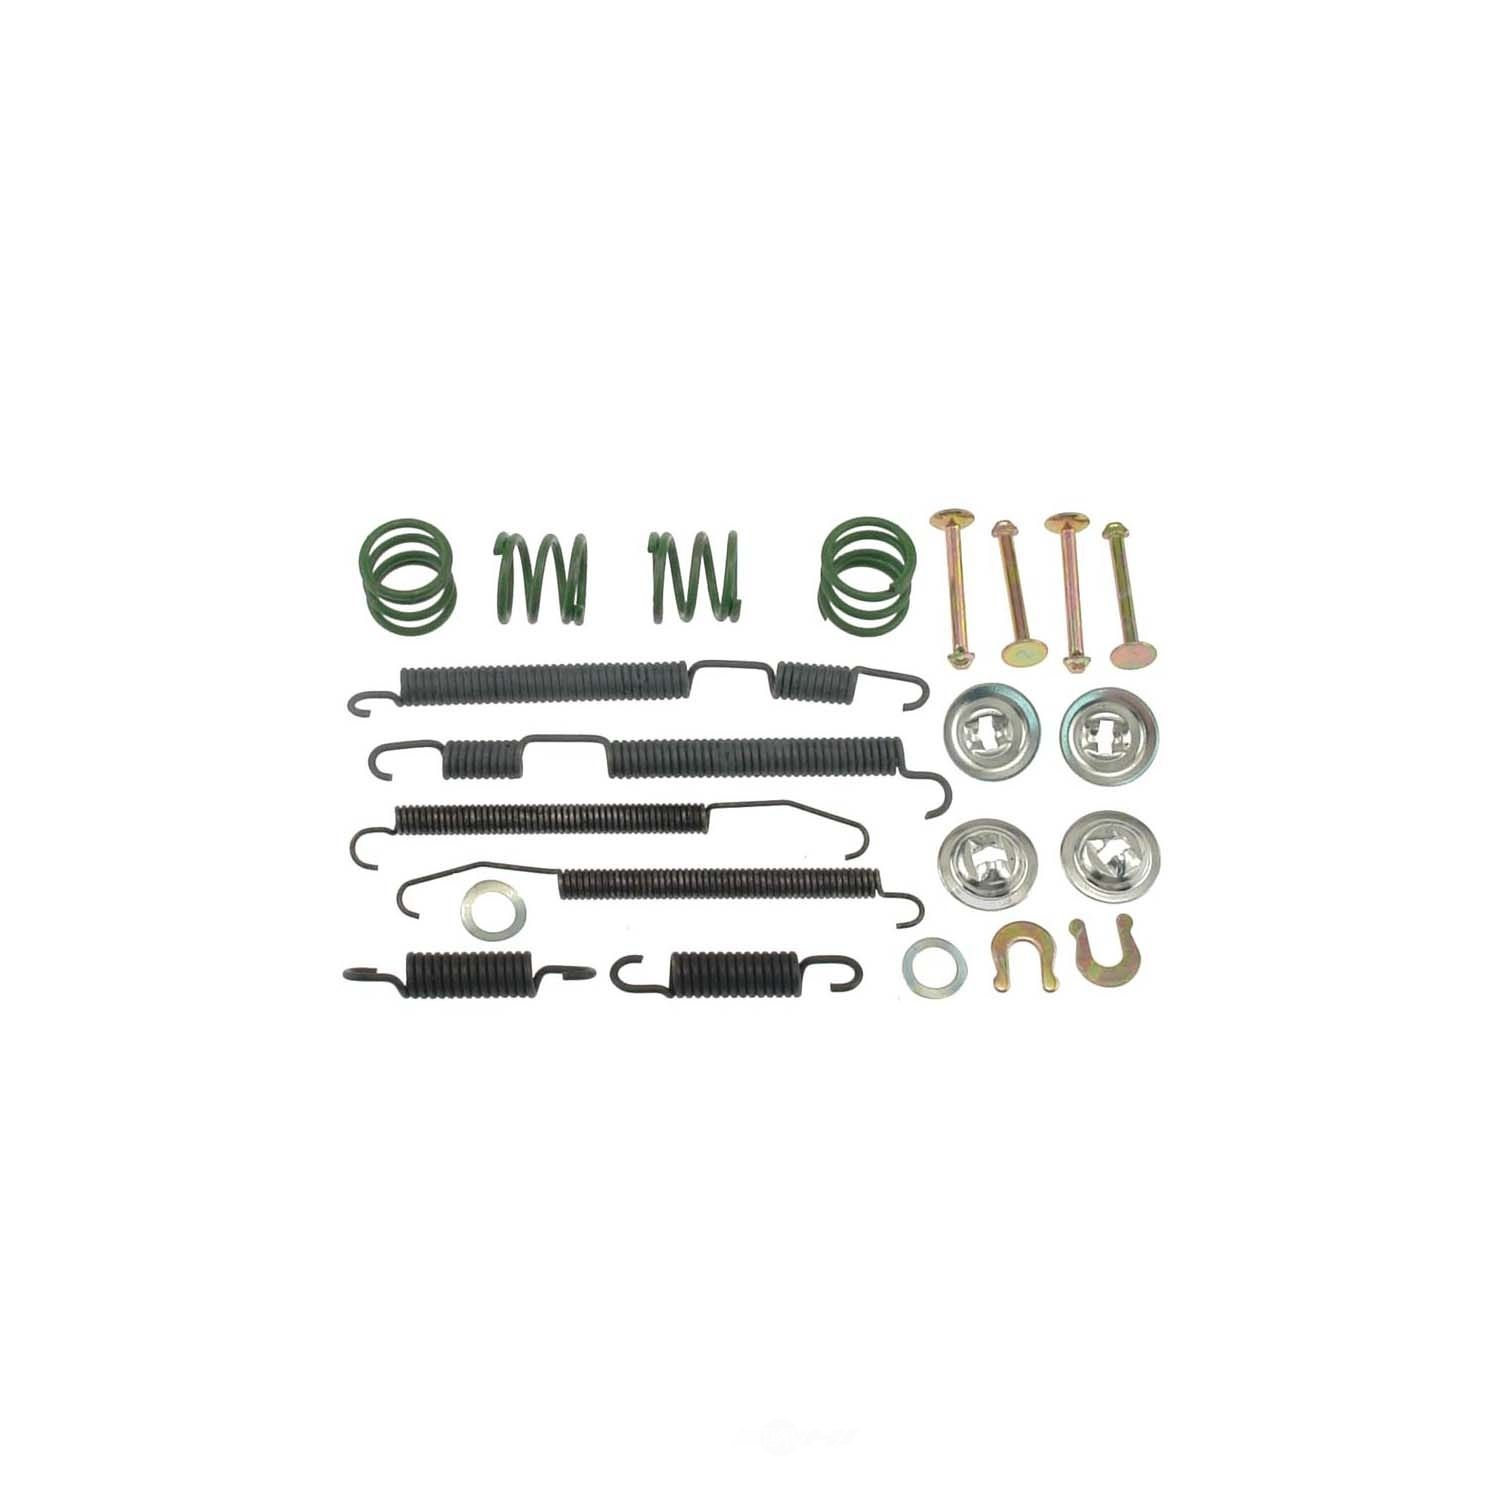 Mitsubishi Eclipse Awd Gsx Drum Brake Hardware Kit From